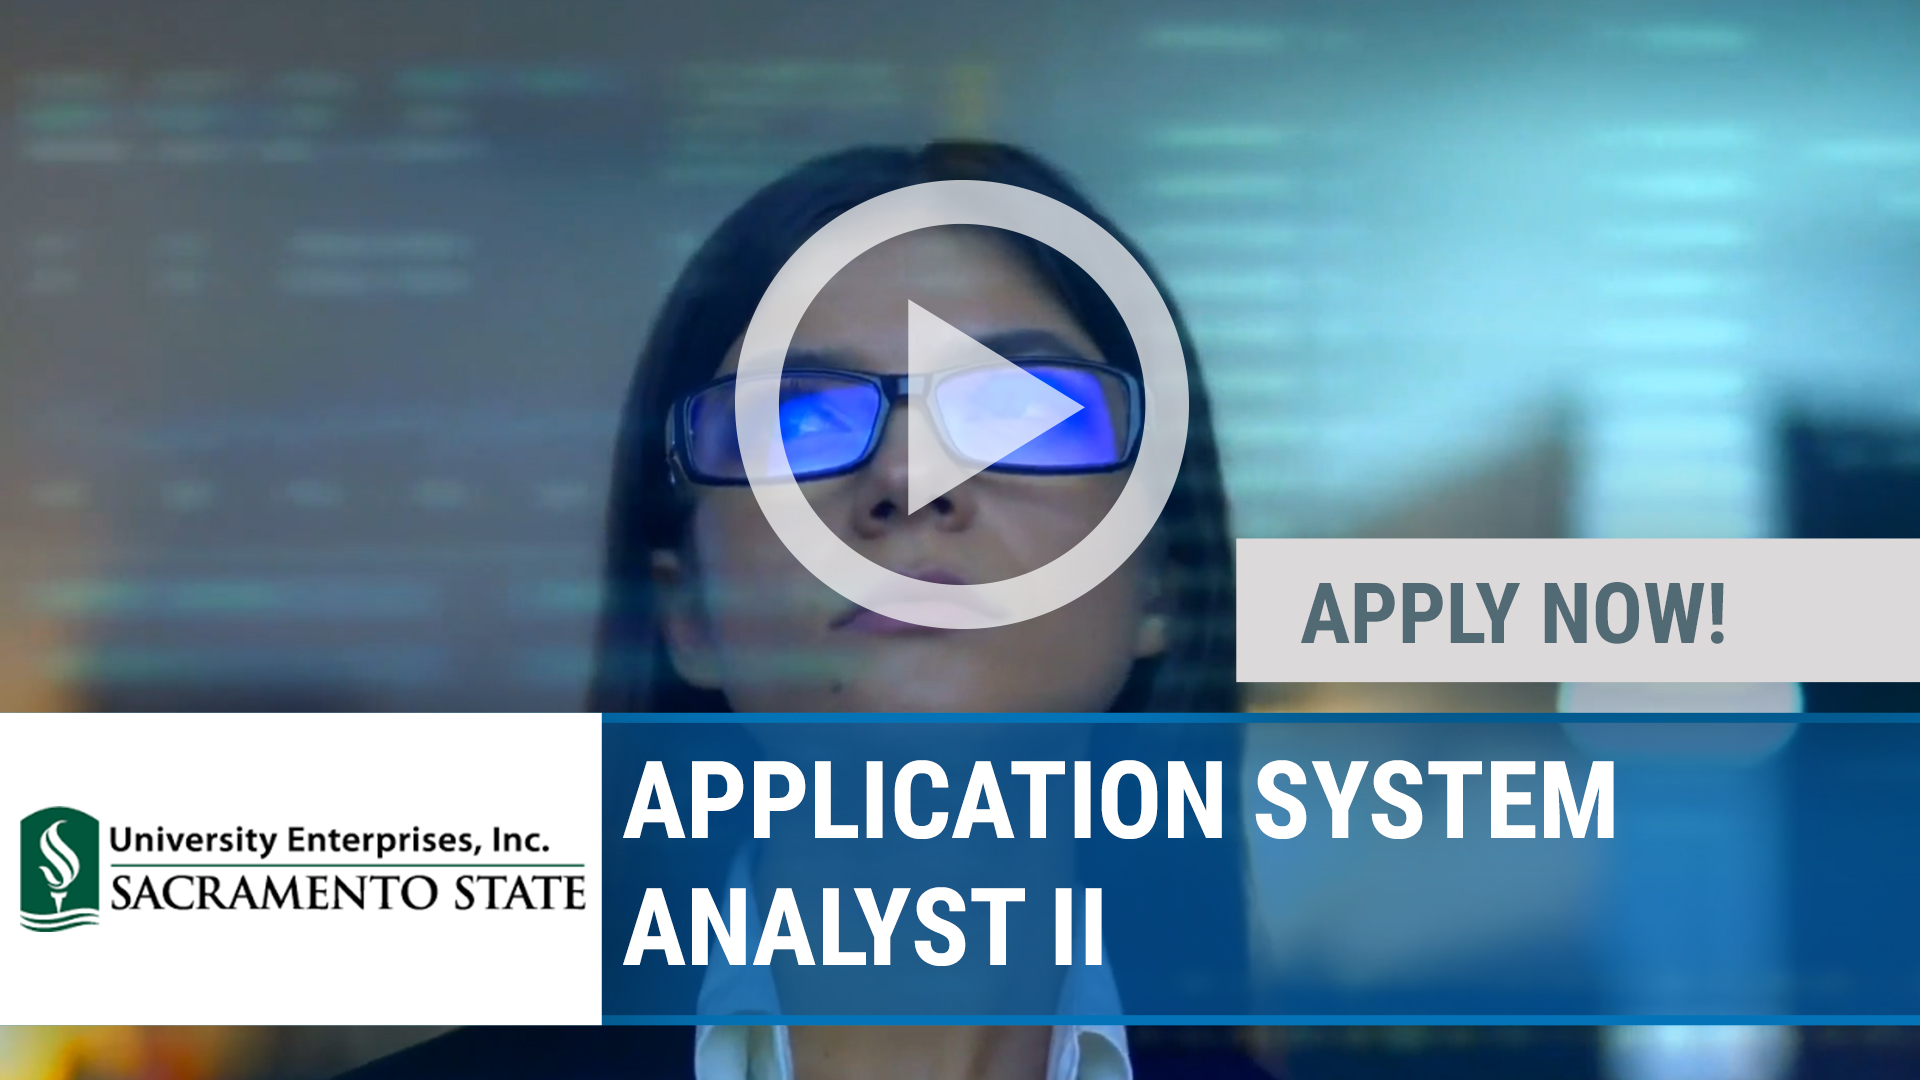 Watch our careers video for available job opening APPLICATION SYSTEM ANALYST II in SACRAMENTO, CA